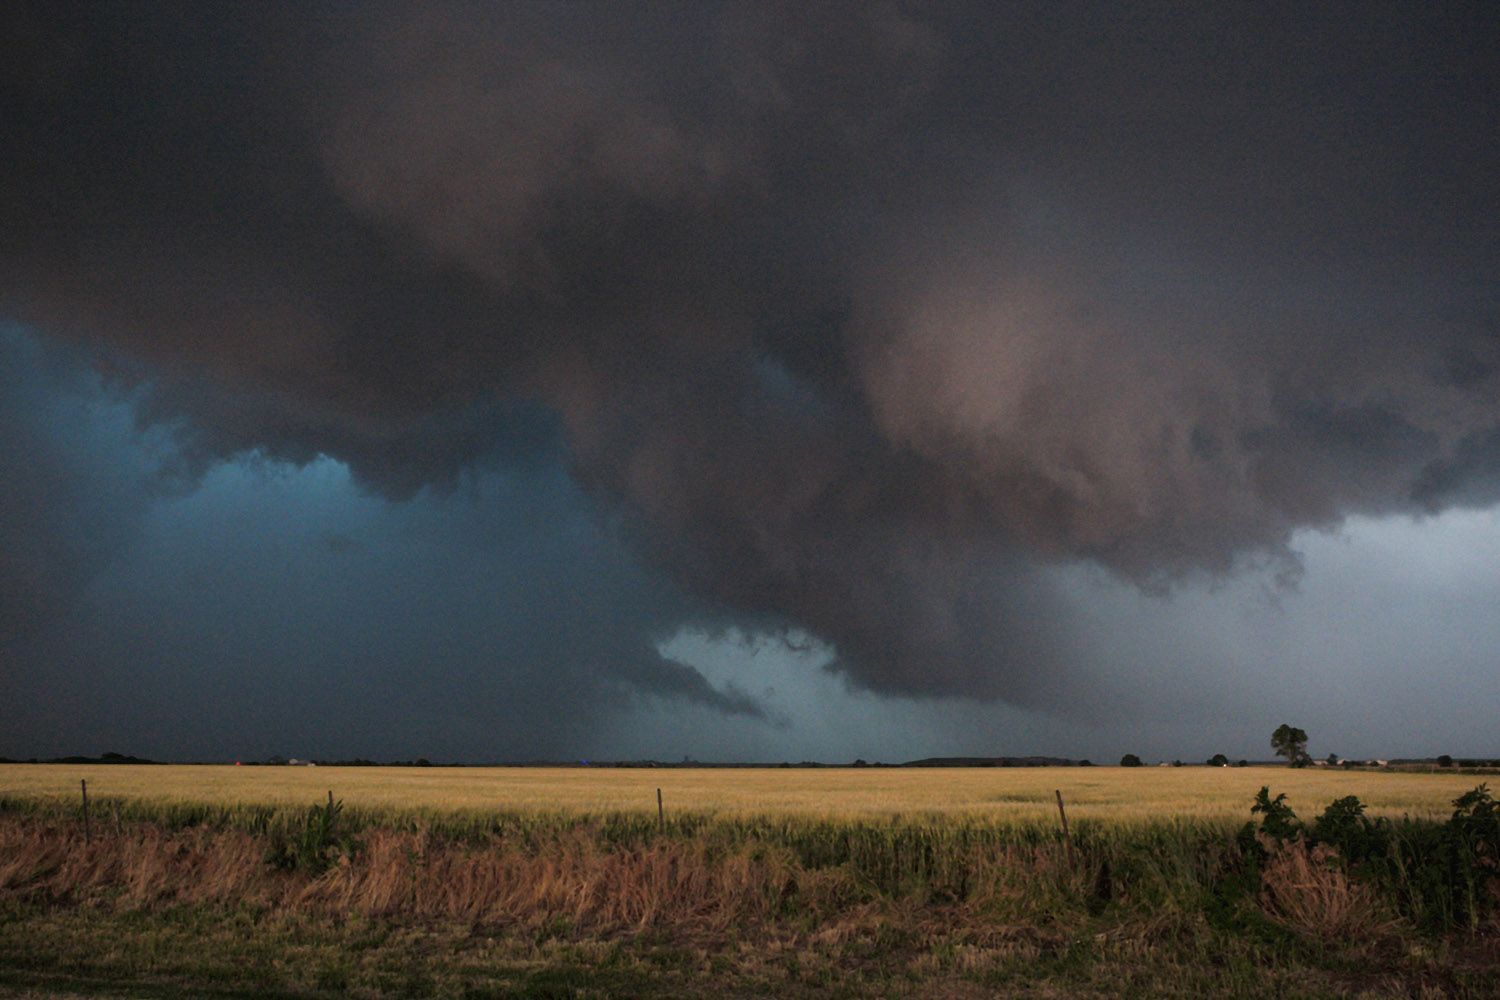 May 31, 2013. Large clouds are seen as a tornado passes south of El Reno, Okla. Violent thunderstorms spawned tornadoes that menaced Oklahoma City and its already hard-hit suburb of Moore on Friday, killing a mother and her baby, and officials worried that drivers stuck on freeways could be trapped in the path of dangerous twisters.